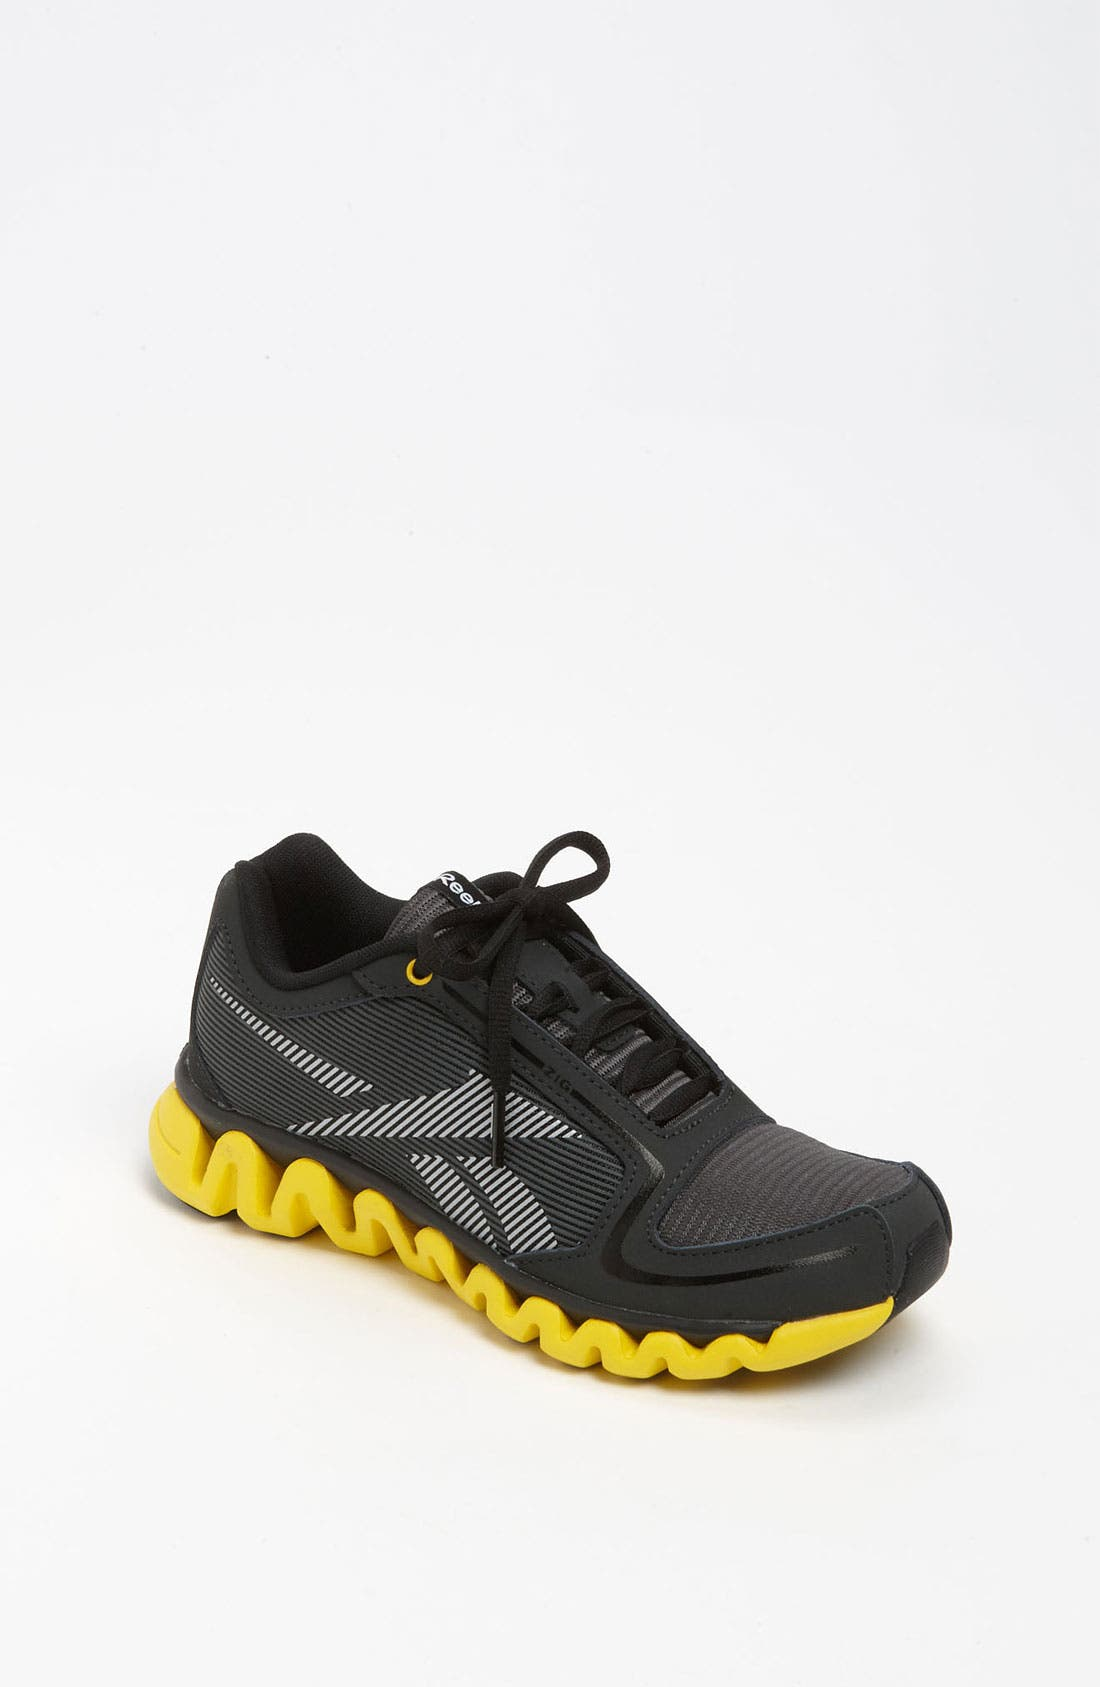 Main Image - Reebok 'ZigLite Run' Sneaker (Toddler, Little Kid & Big Kid)